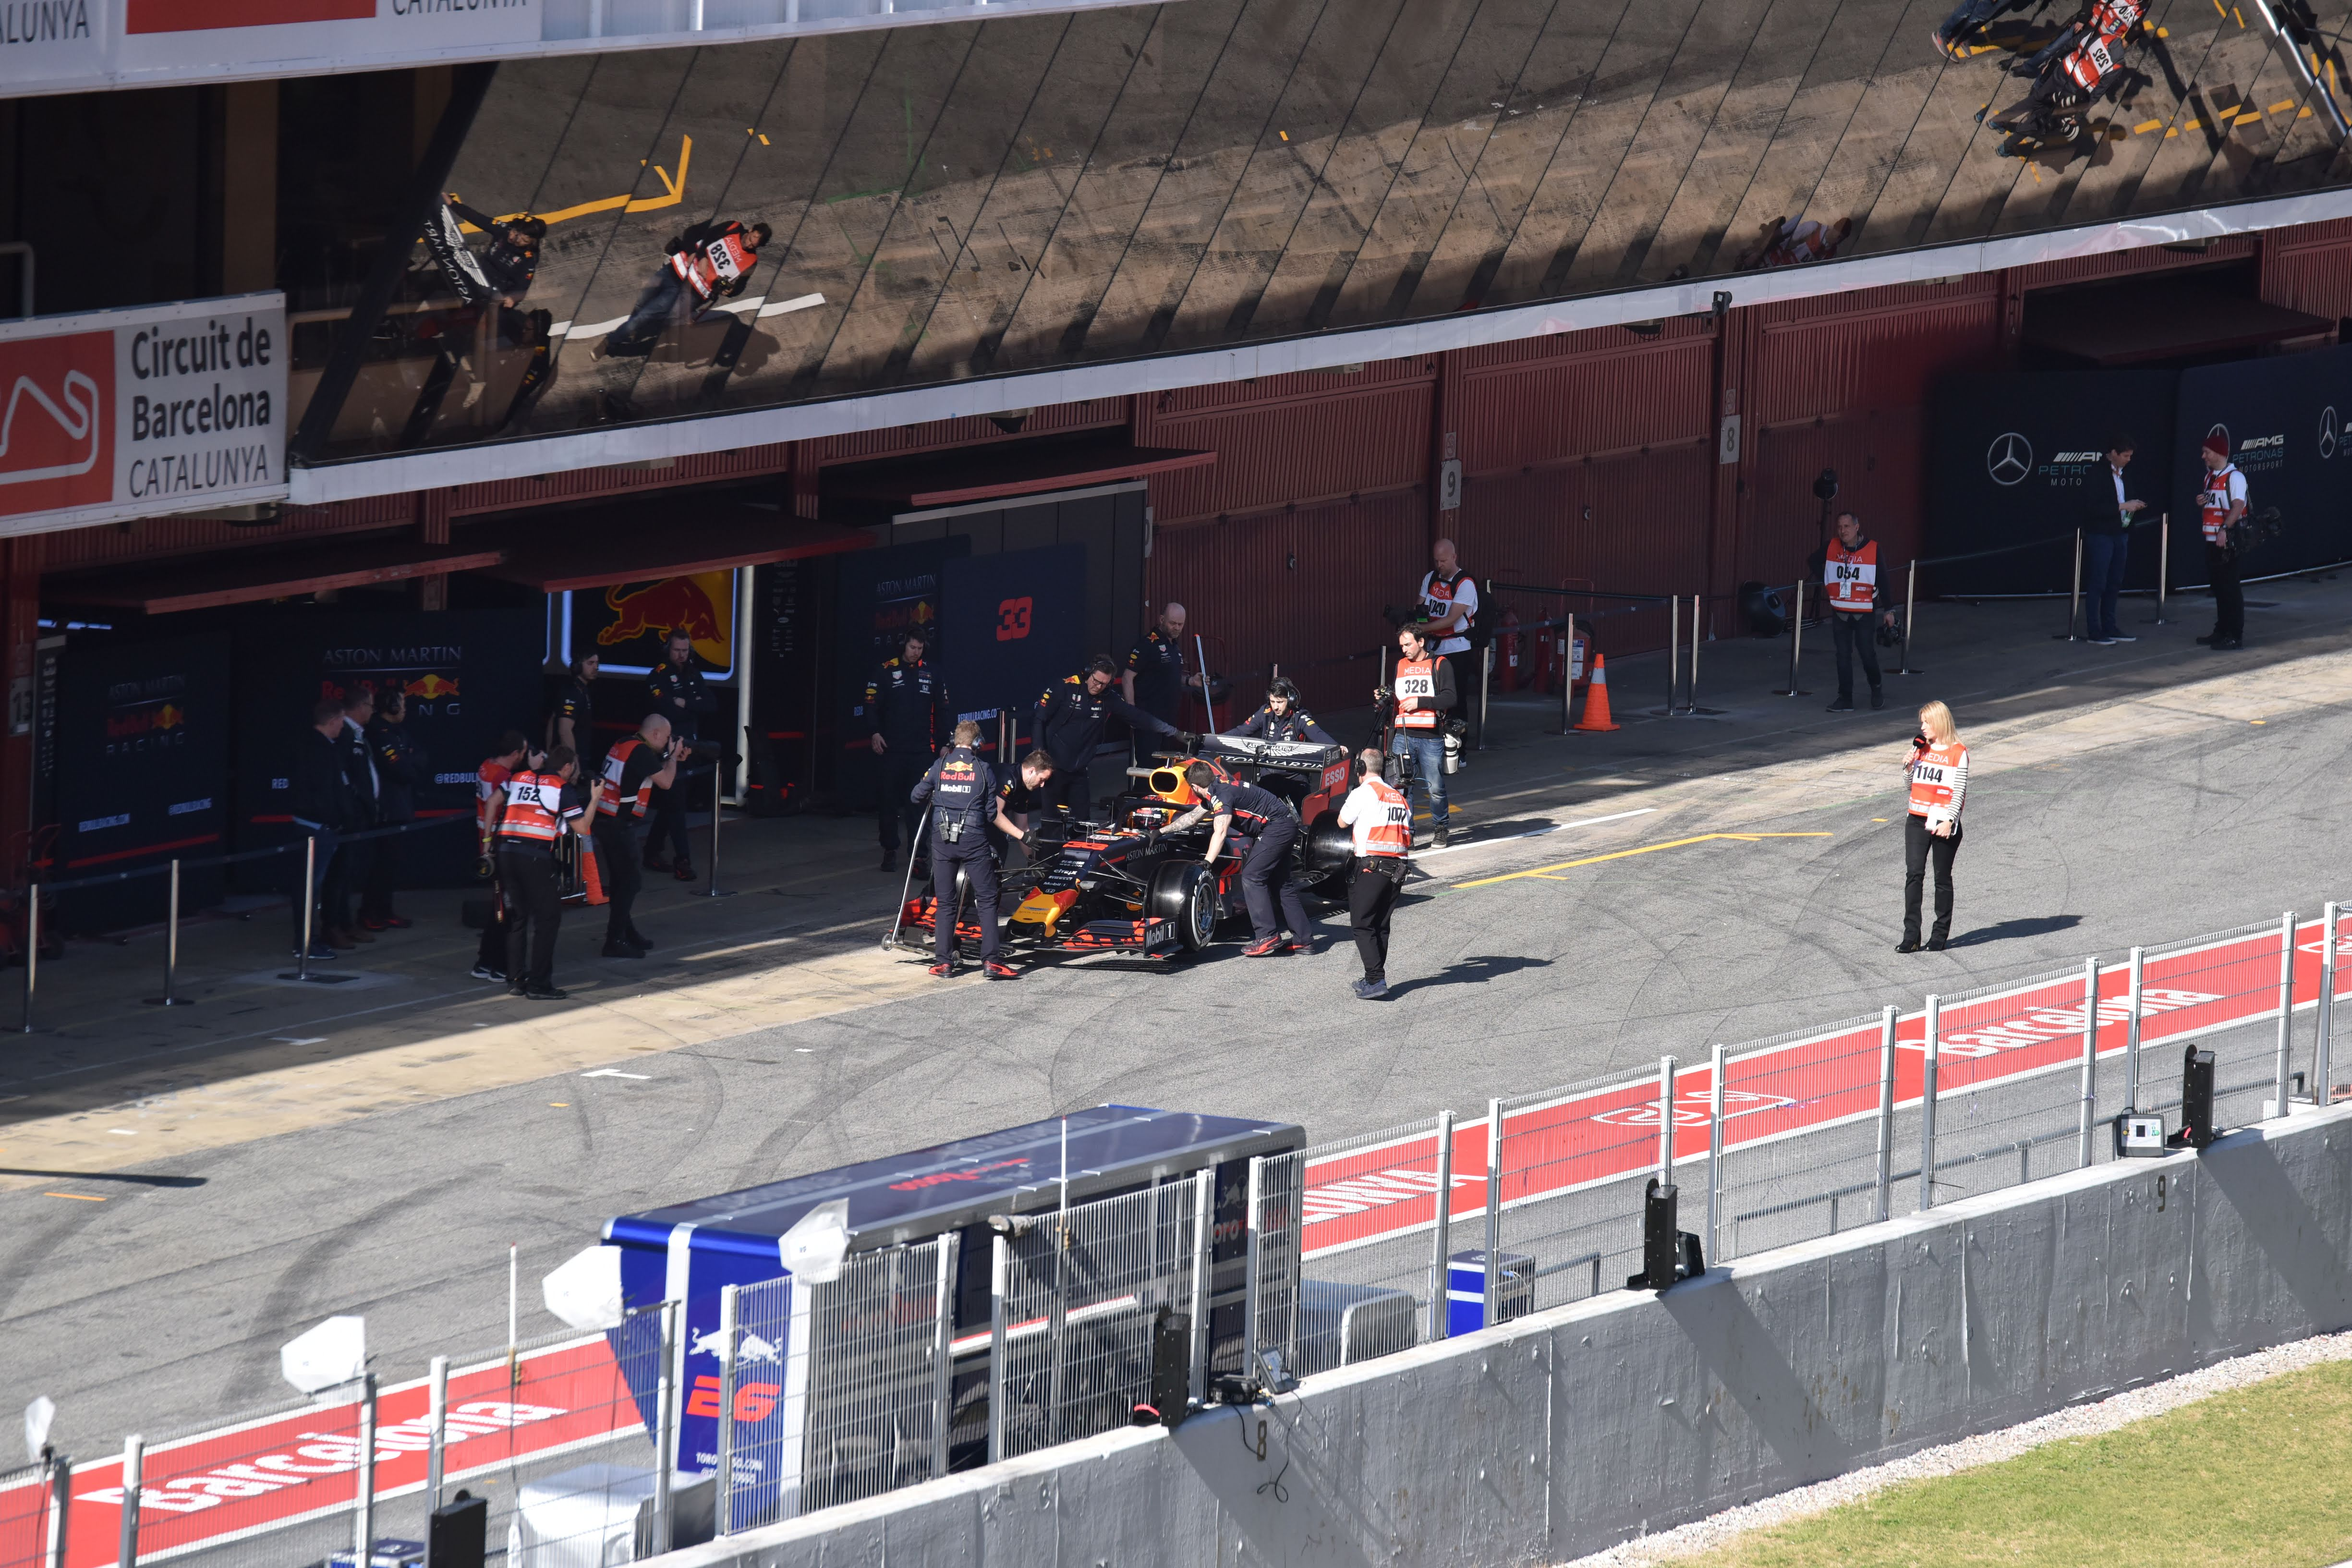 Aston Martin Red Bull Racing RB15 - pitlane - F1 Testing - 2019 - photo by Jacques Denis - Team DESIGNMOTEUR